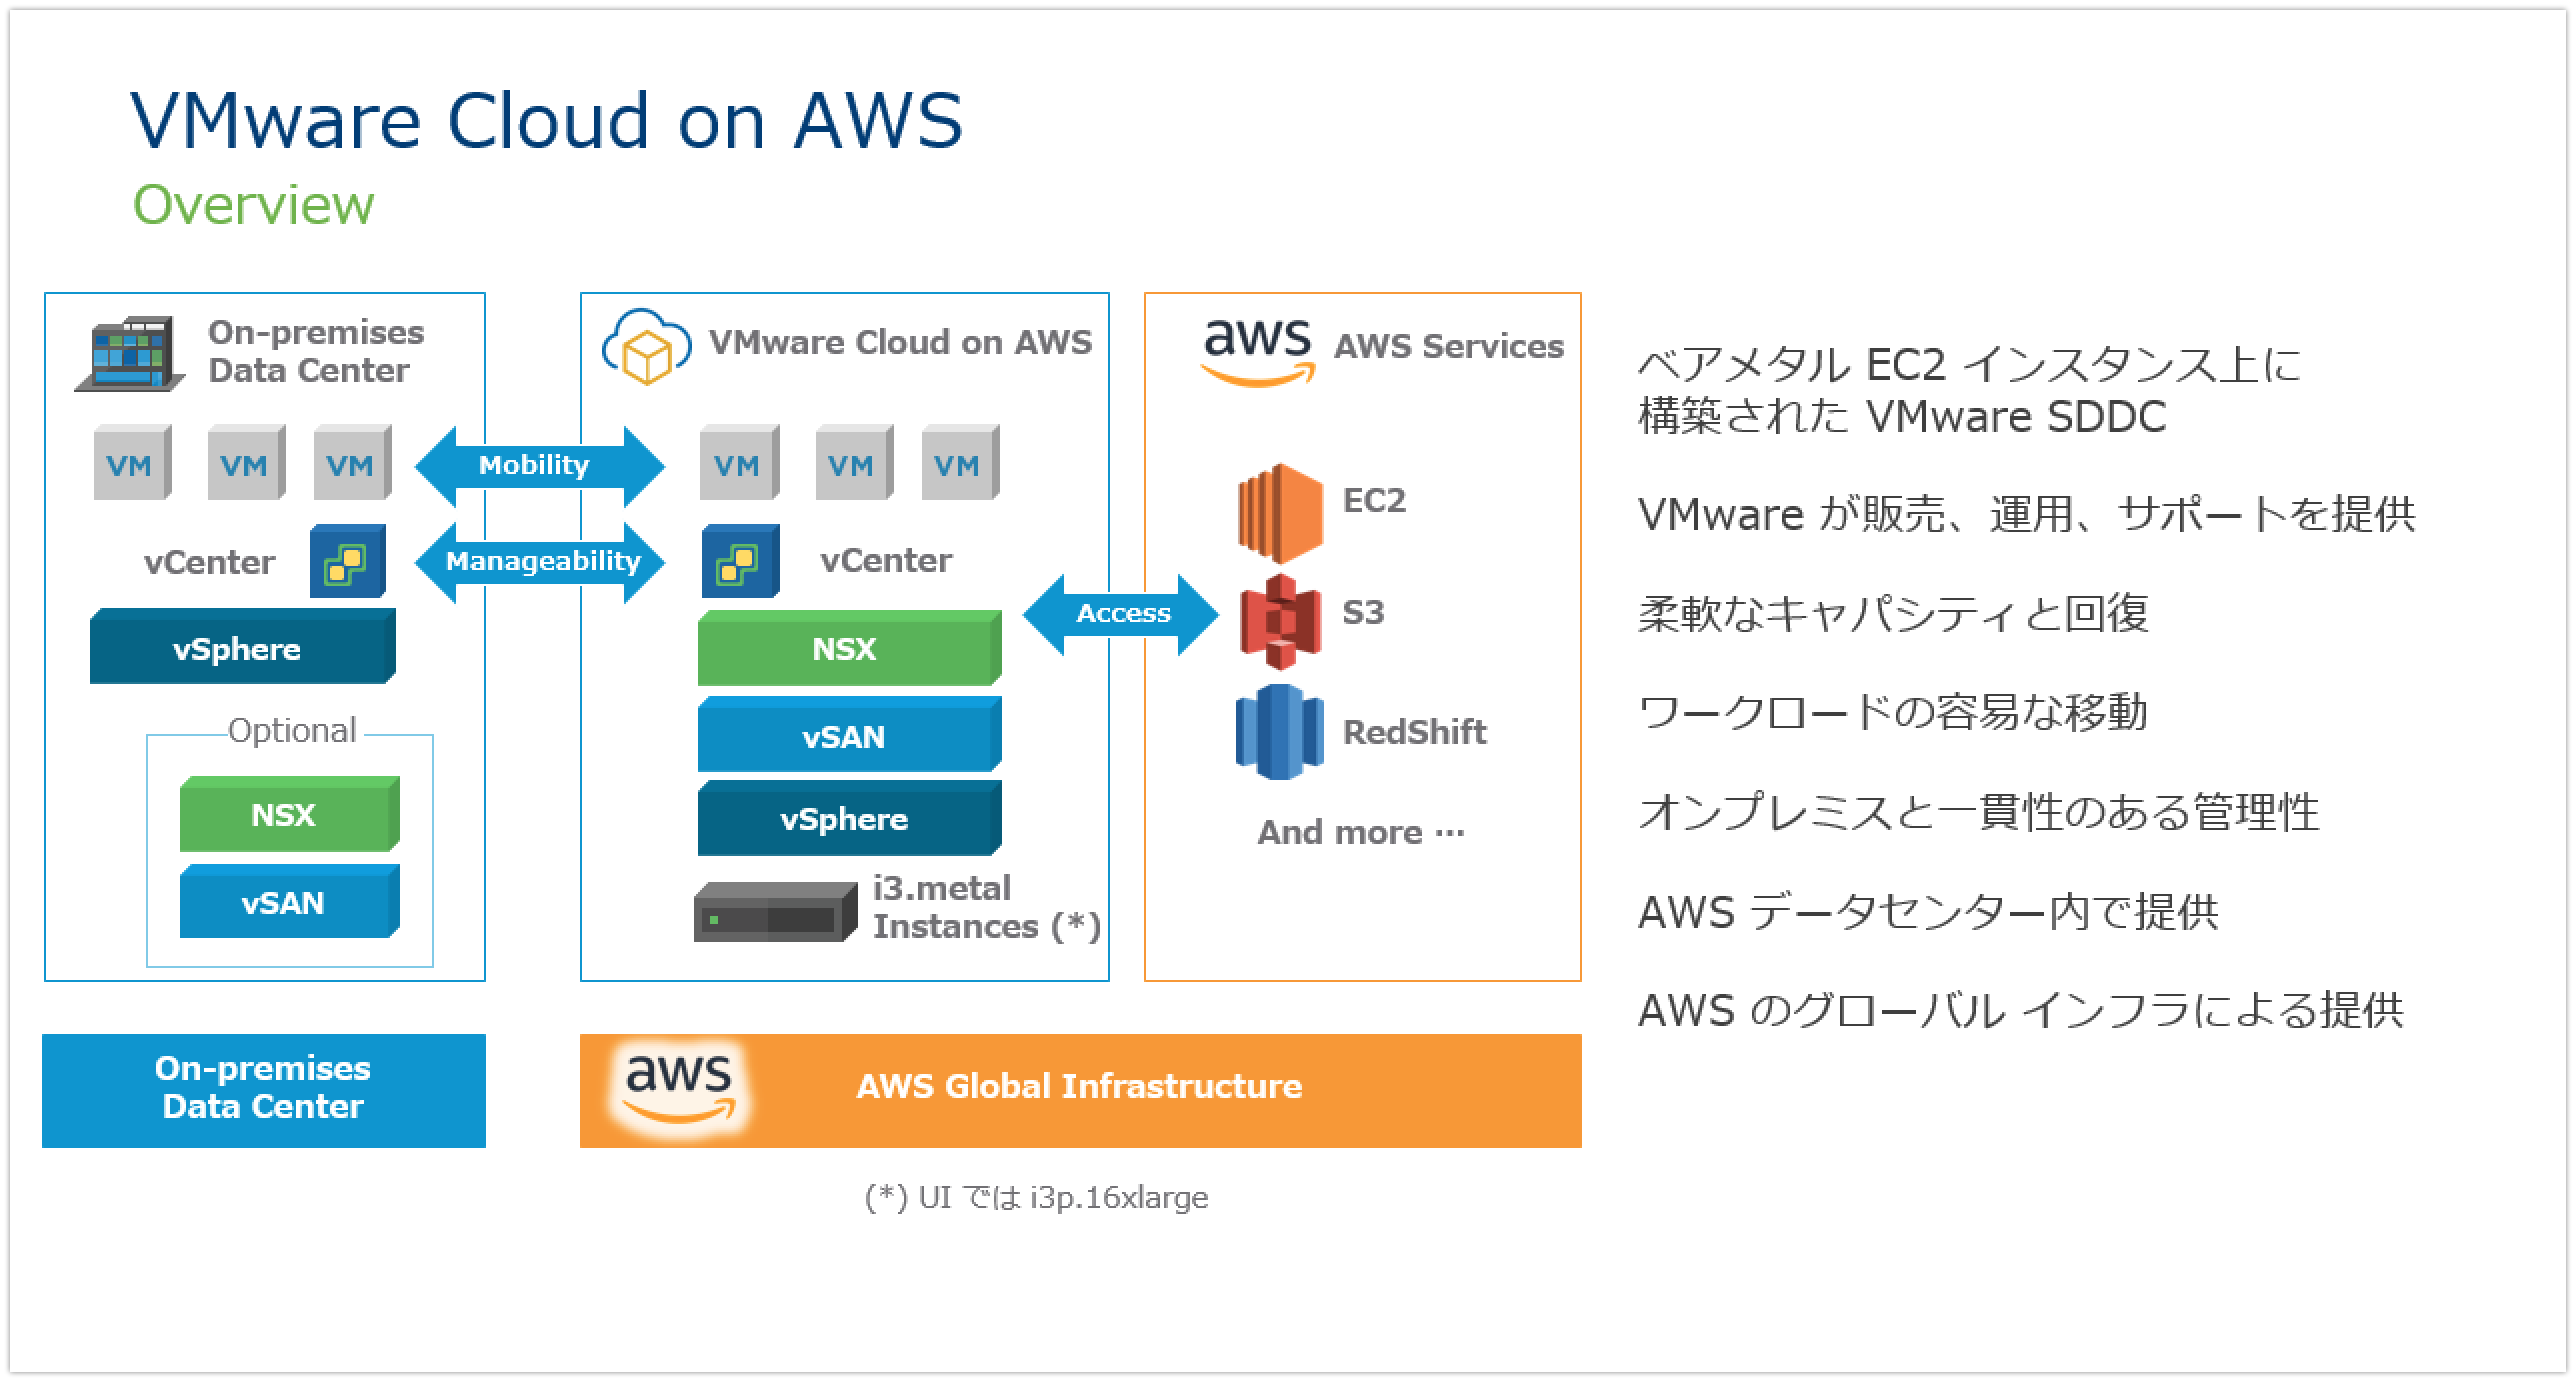 VMware Cloud on AWS の概要